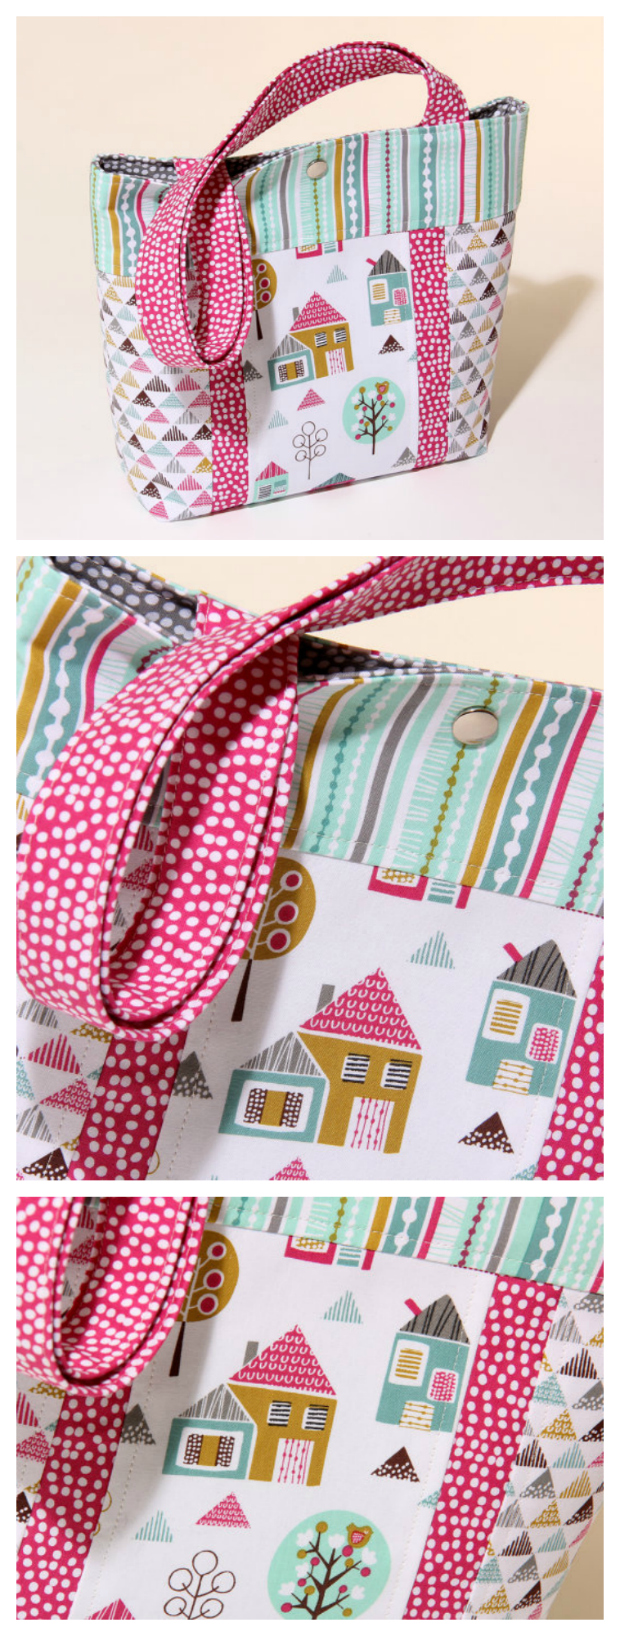 Here is the perfect gift idea for a little girl. Make this cute mini tote with modern, fun fabrics. It's quick to sew, is fully lined and has a flat base for extra space. The Petite Street Childs Tote Bag pdf pattern is aimed at the confident beginner sewer.